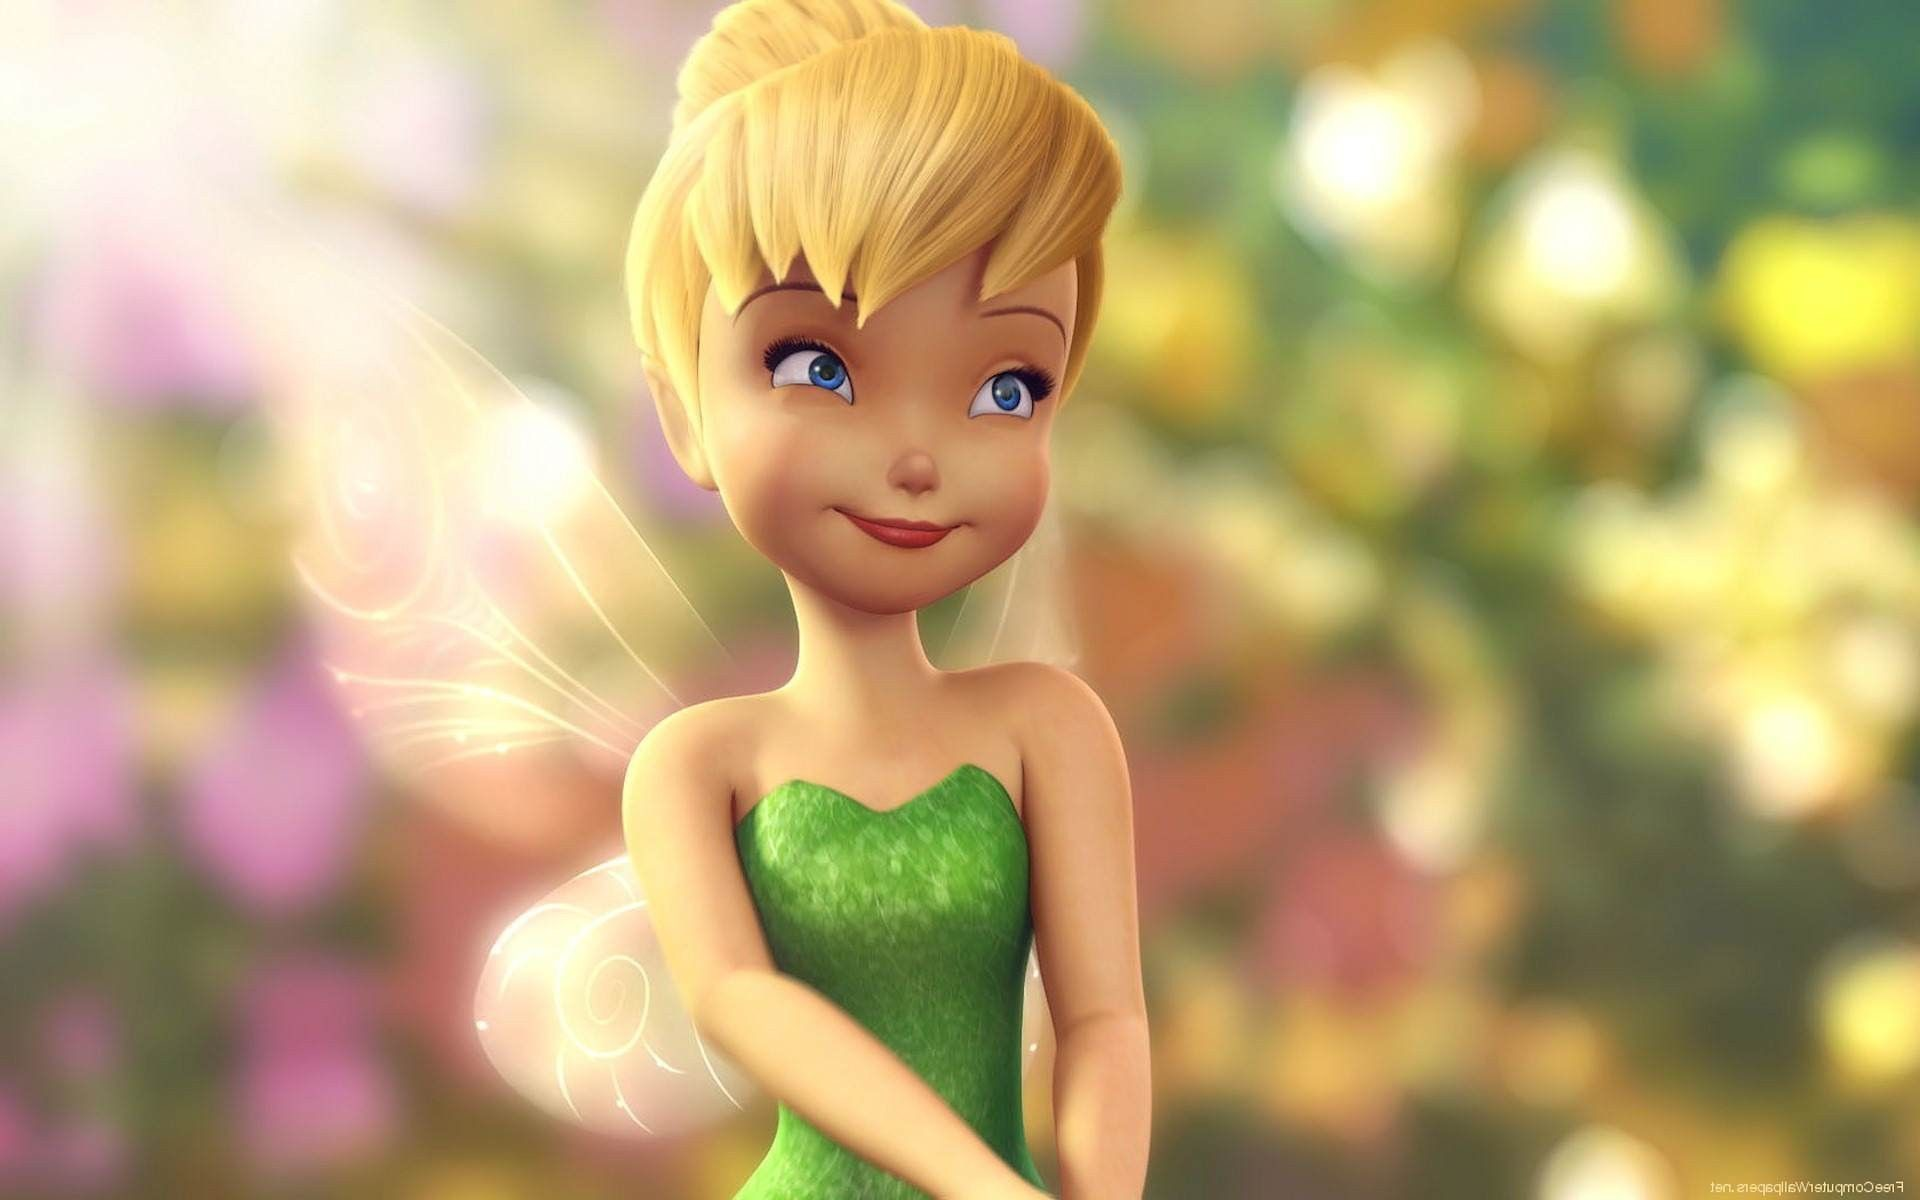 imagenes de tinkerbell 1024×768 Imagenes De Tinkerbell Wallpapers (28  Wallpapers) | Adorable